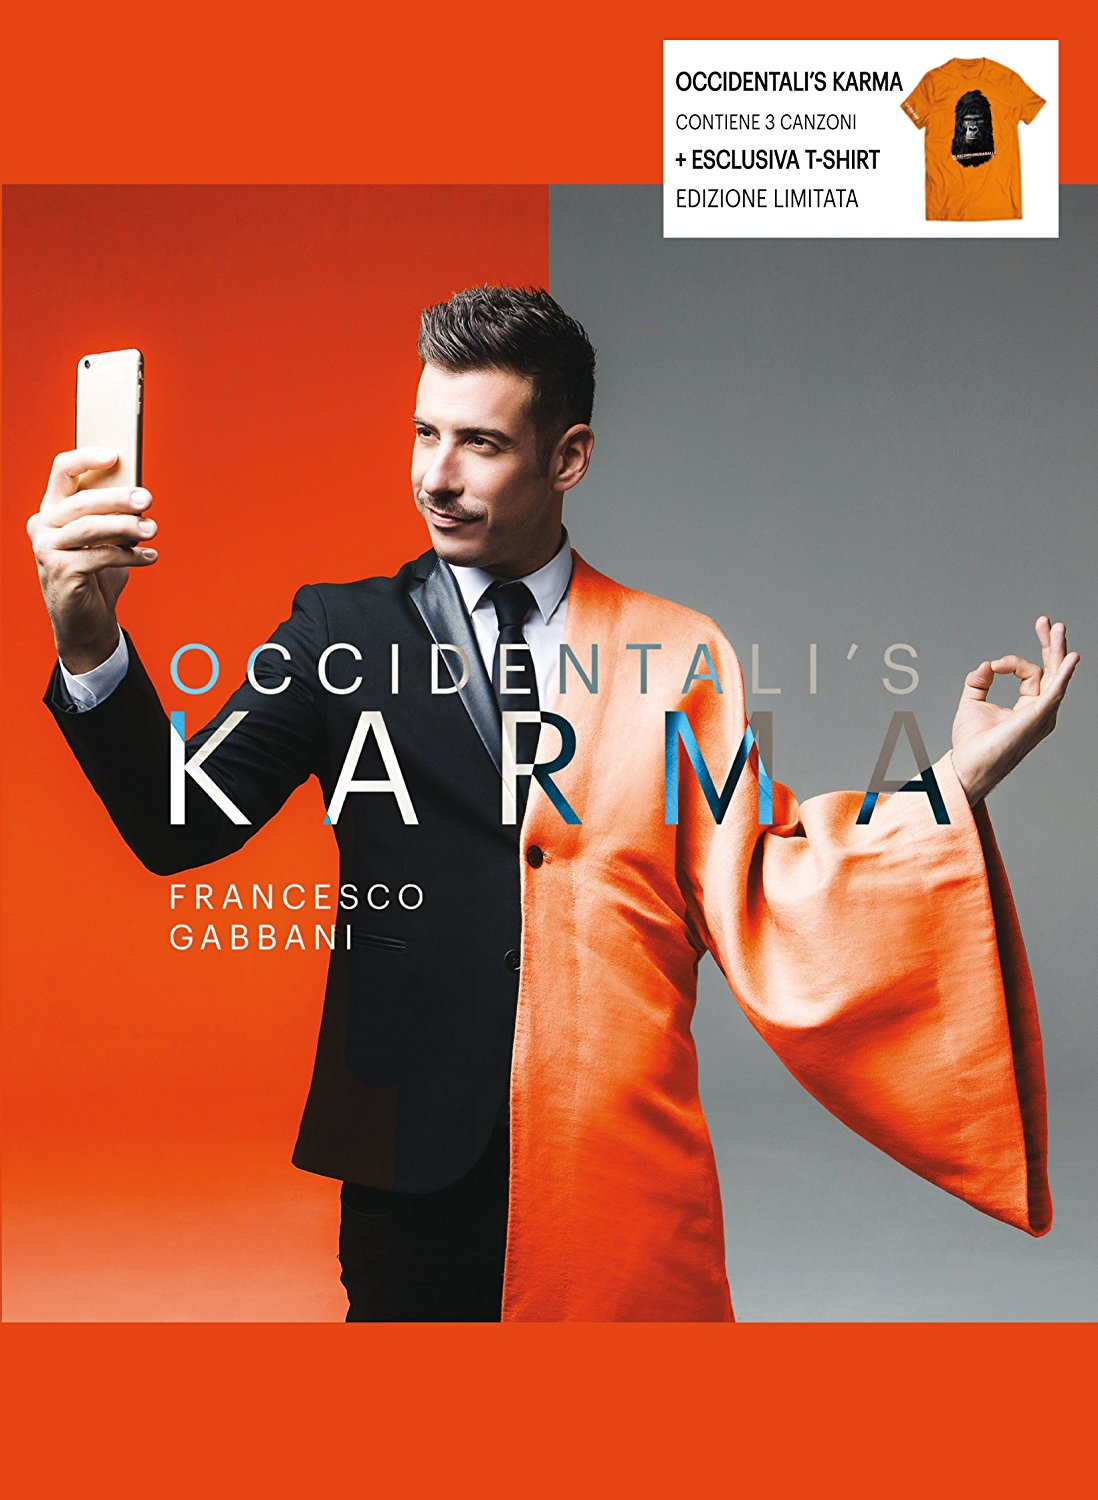 Recensione Francesco Gabbani - Occidentali's Karma